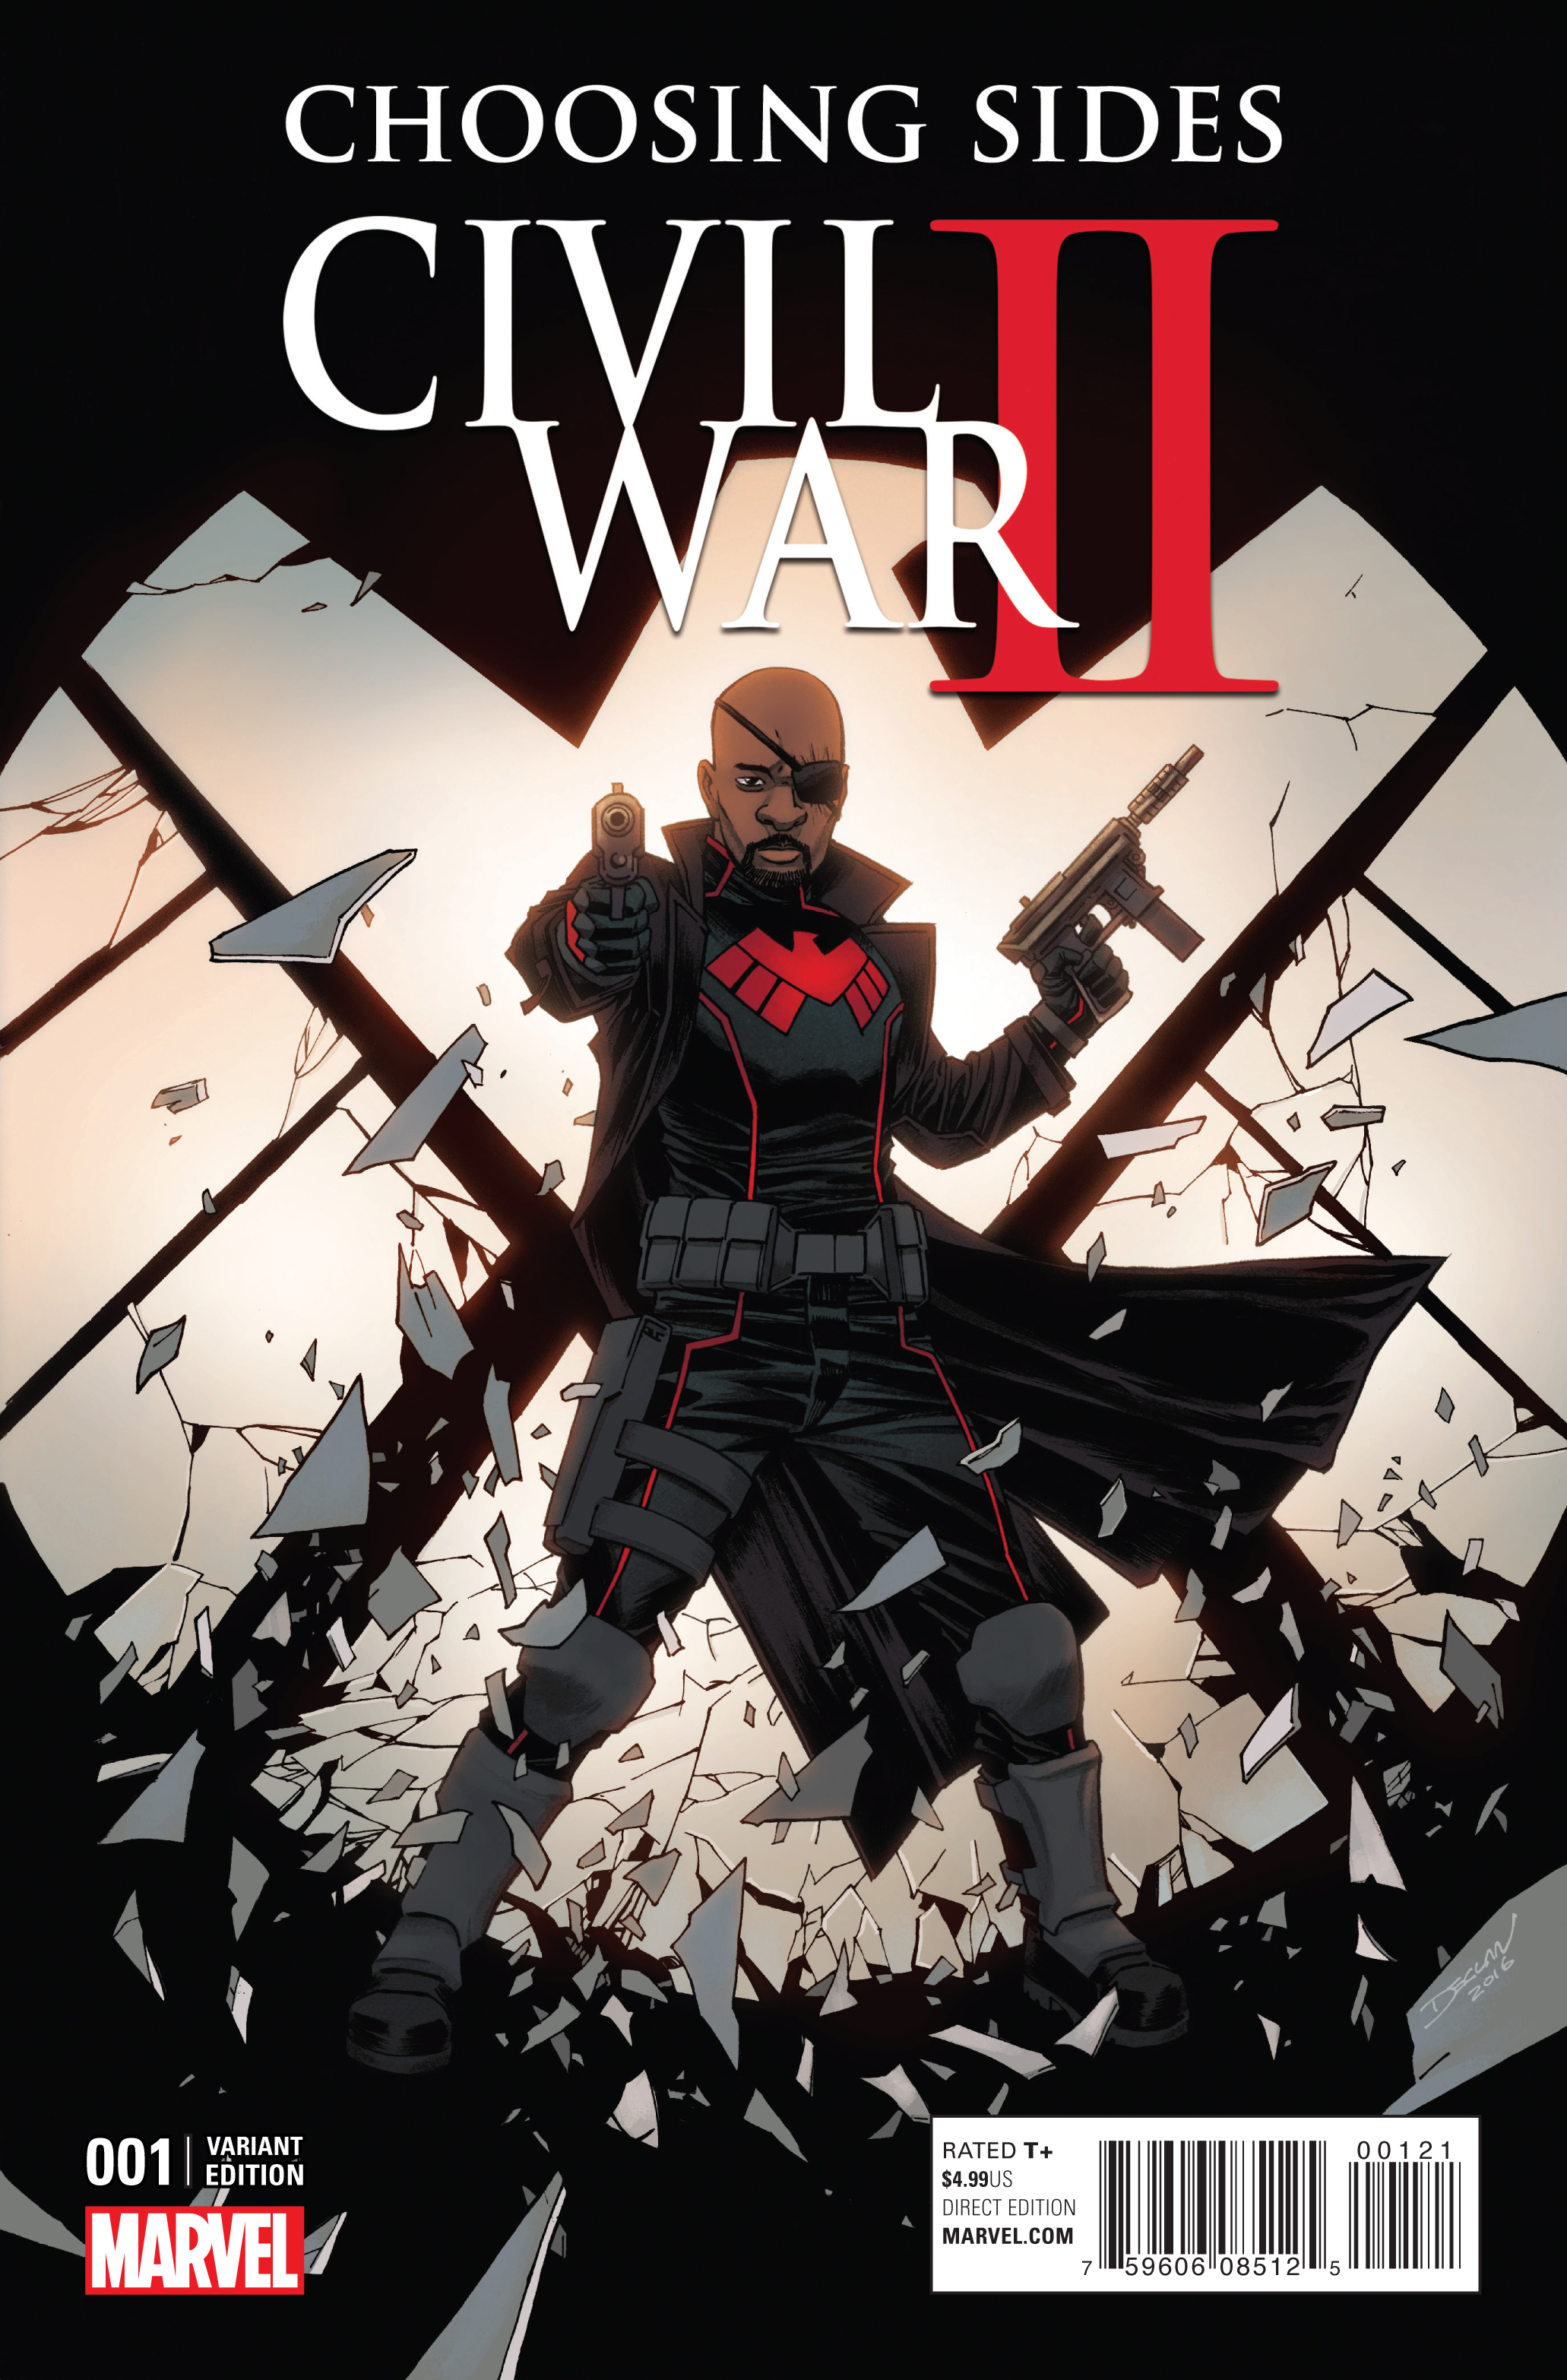 CIVIL WAR II CHOOSING SIDES #1 (OF 6) SHALVEY VAR